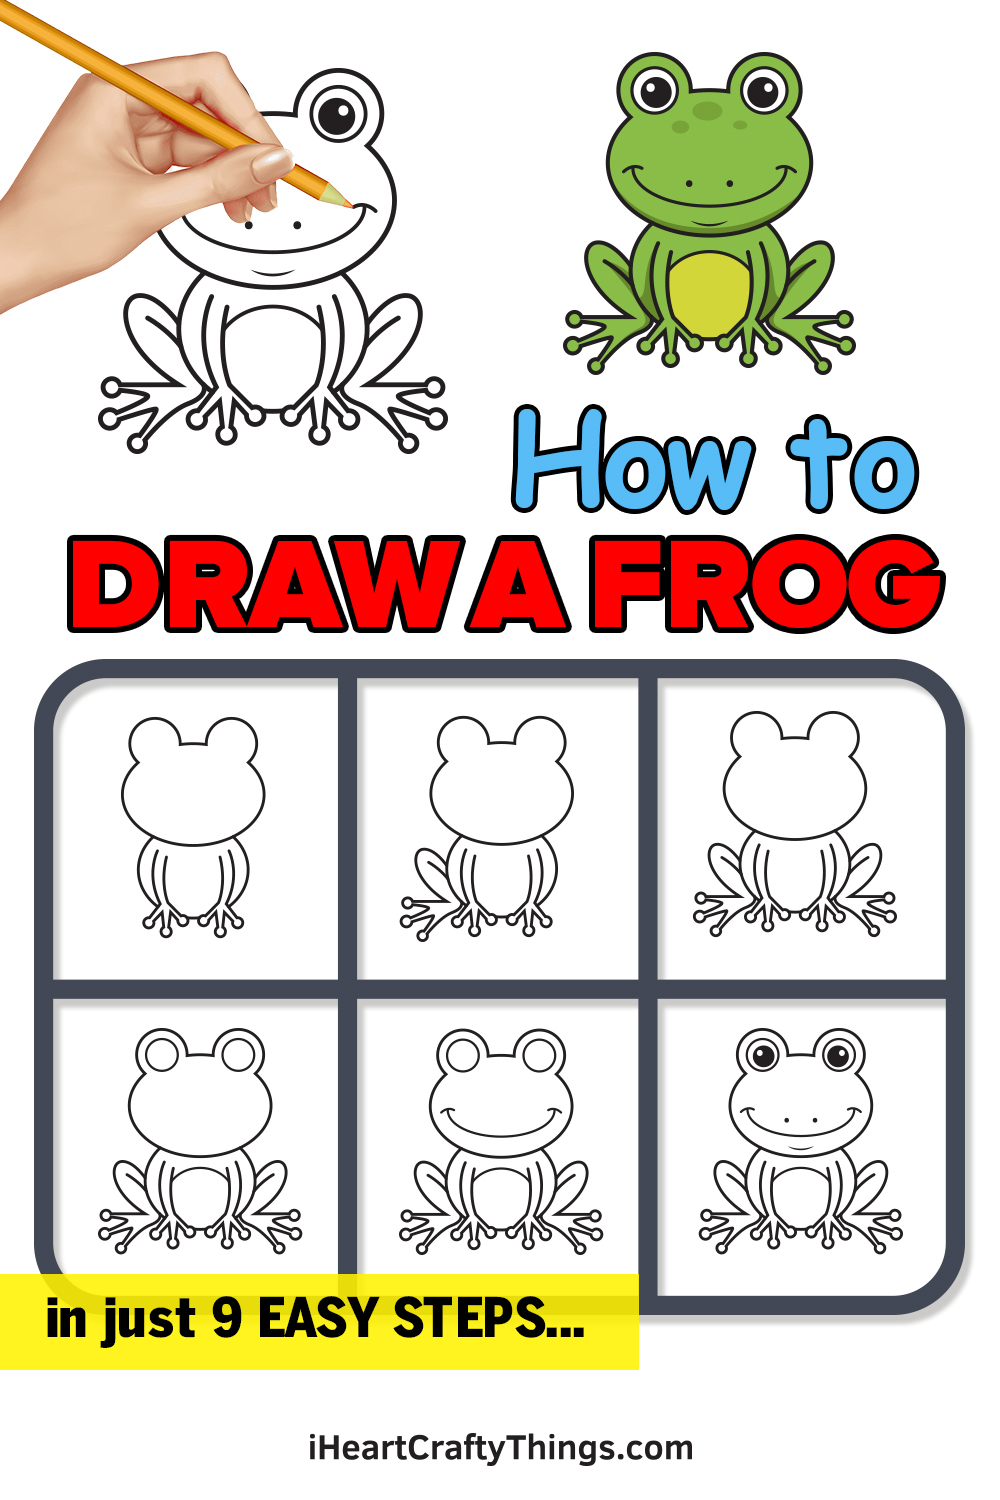 How to Draw a Frog in 9 Easy Steps